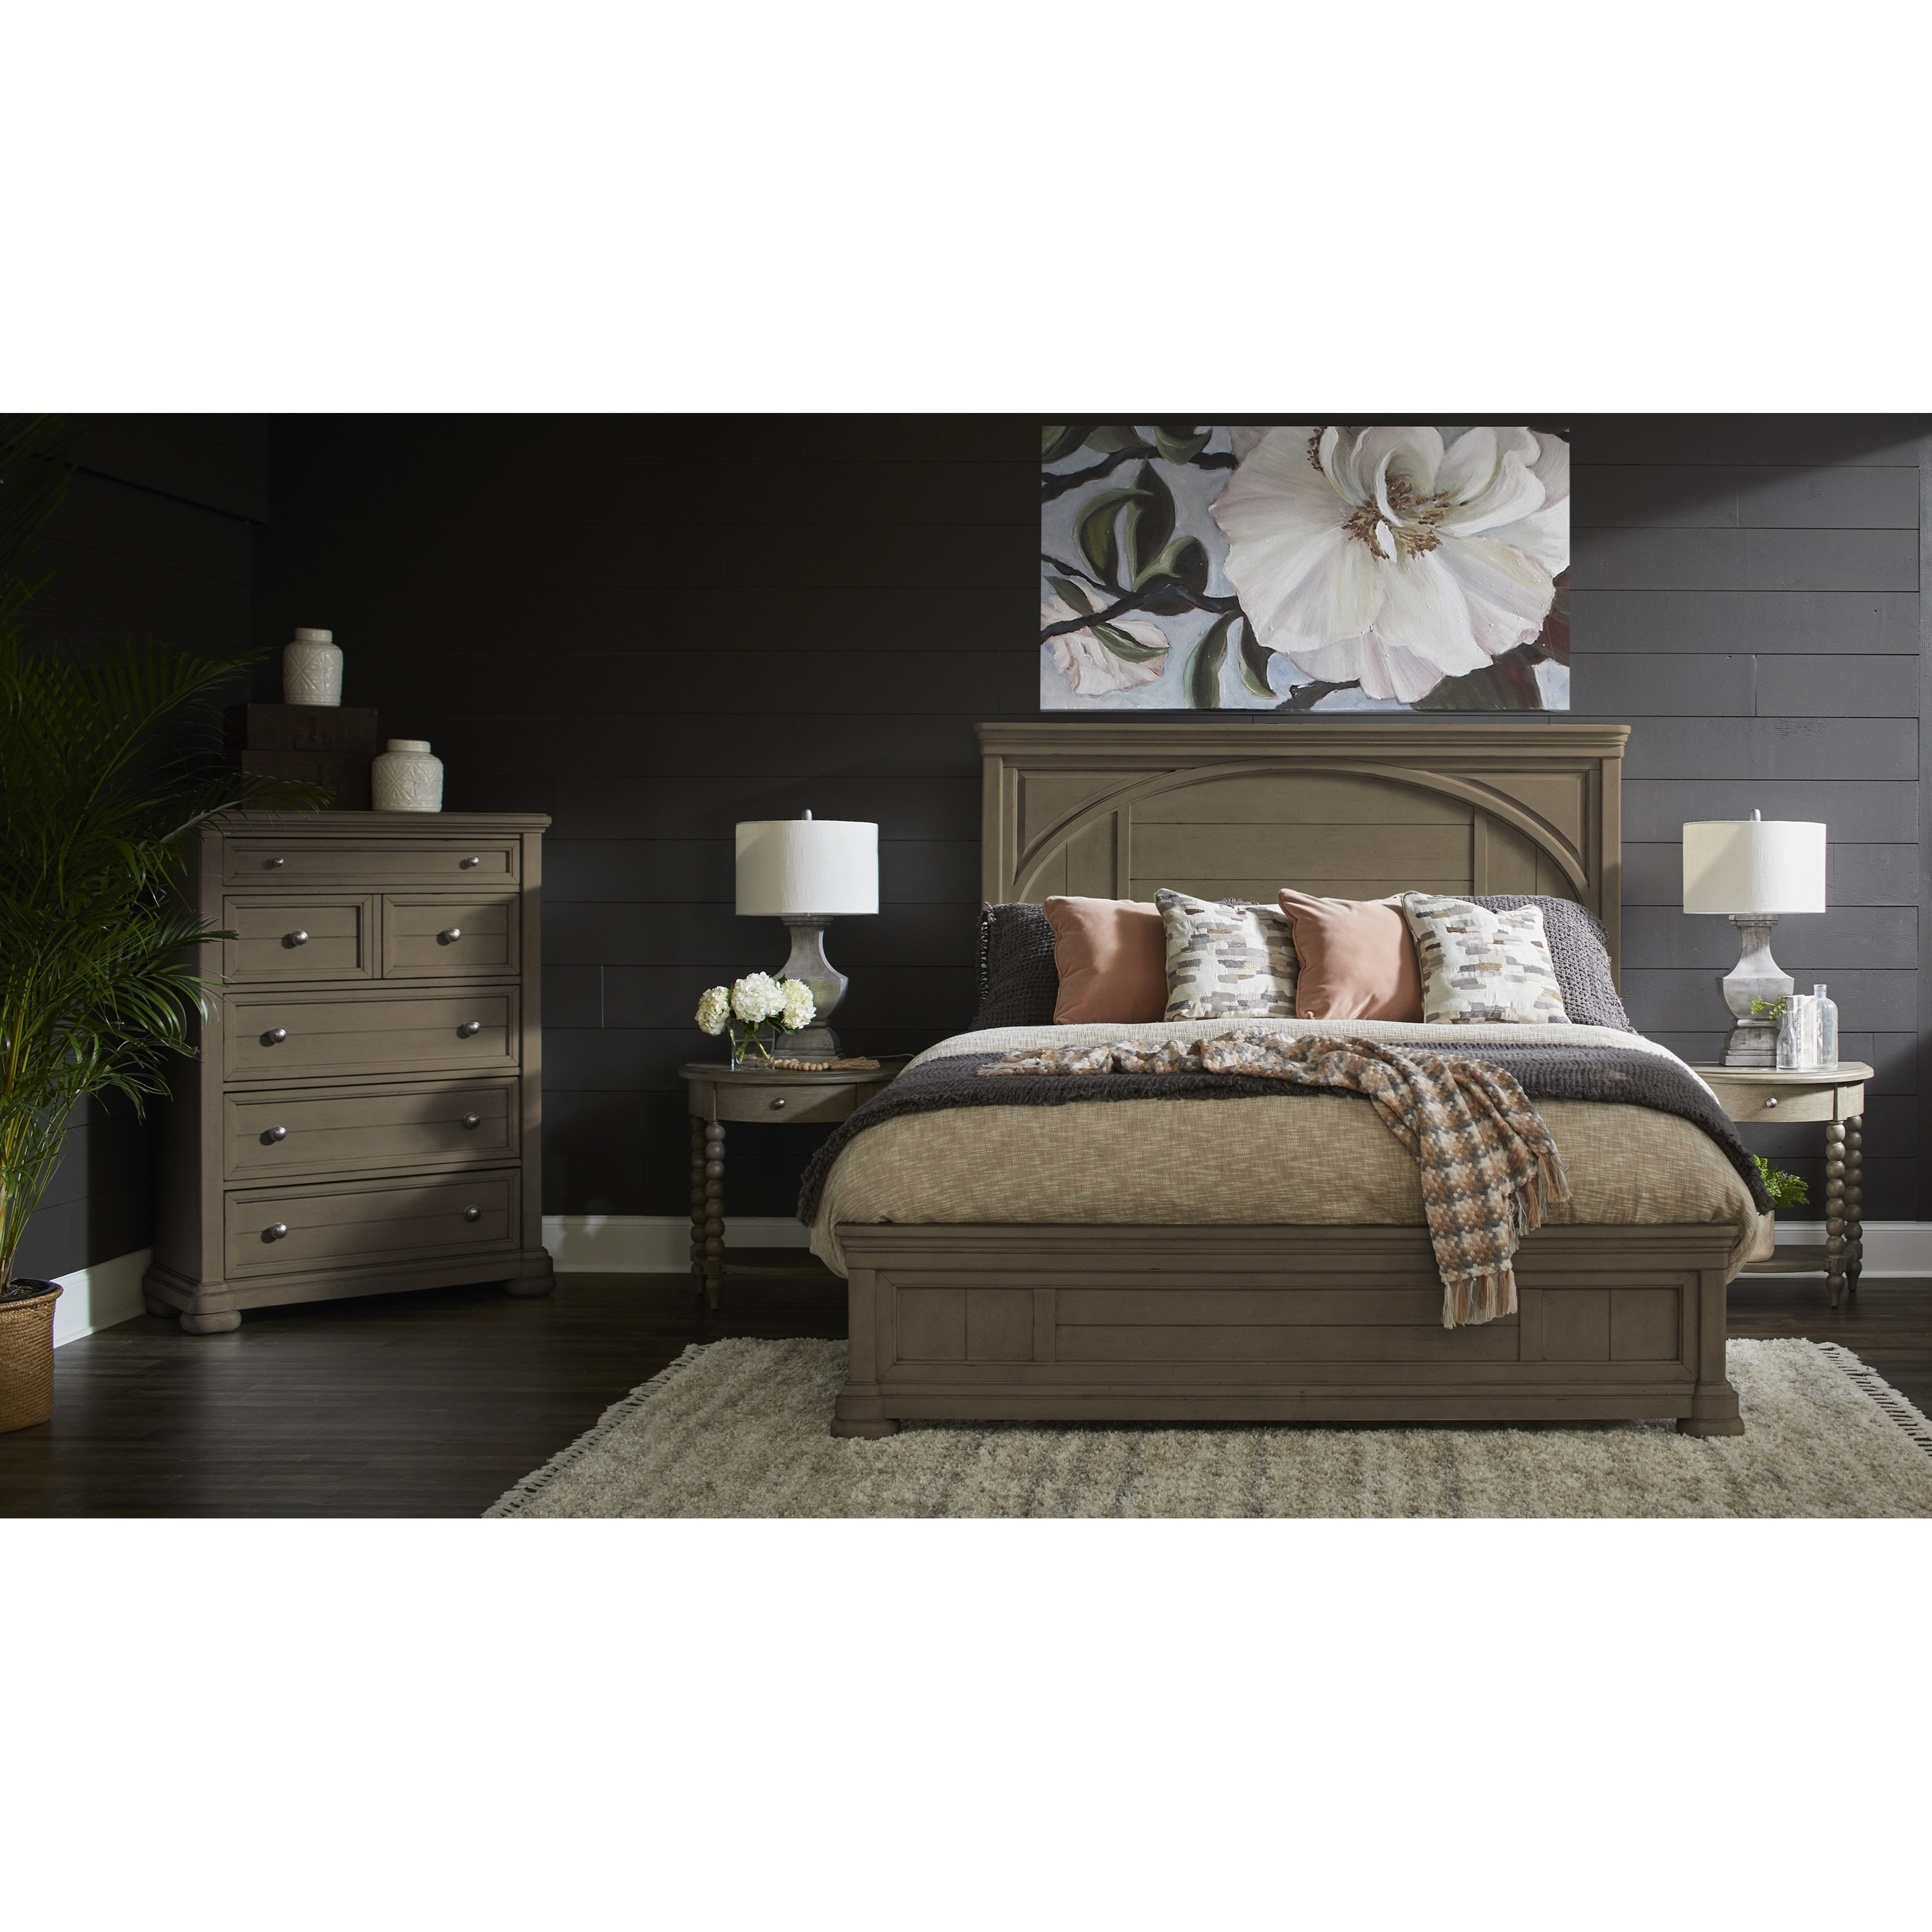 Nashville Queen Bedroom Group by Trisha Yearwood Home Collection by Klaussner at Powell's Furniture and Mattress